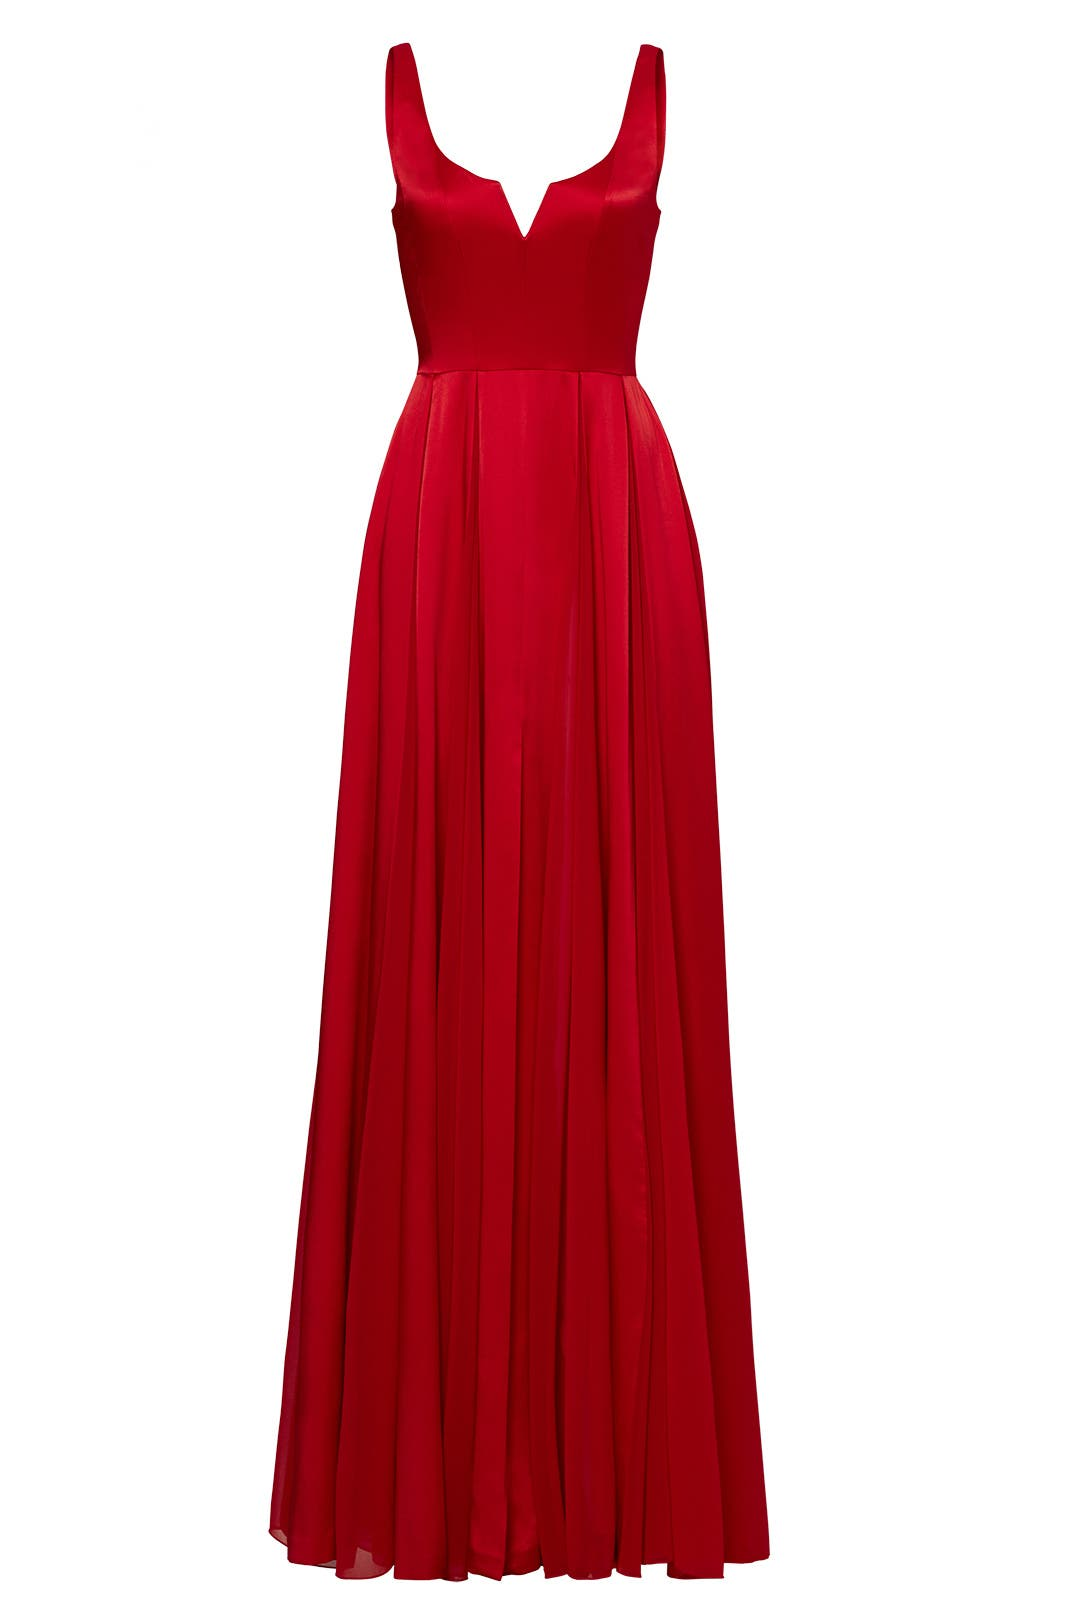 Rent The Runway Clearance Purchase Designer Fashion Up